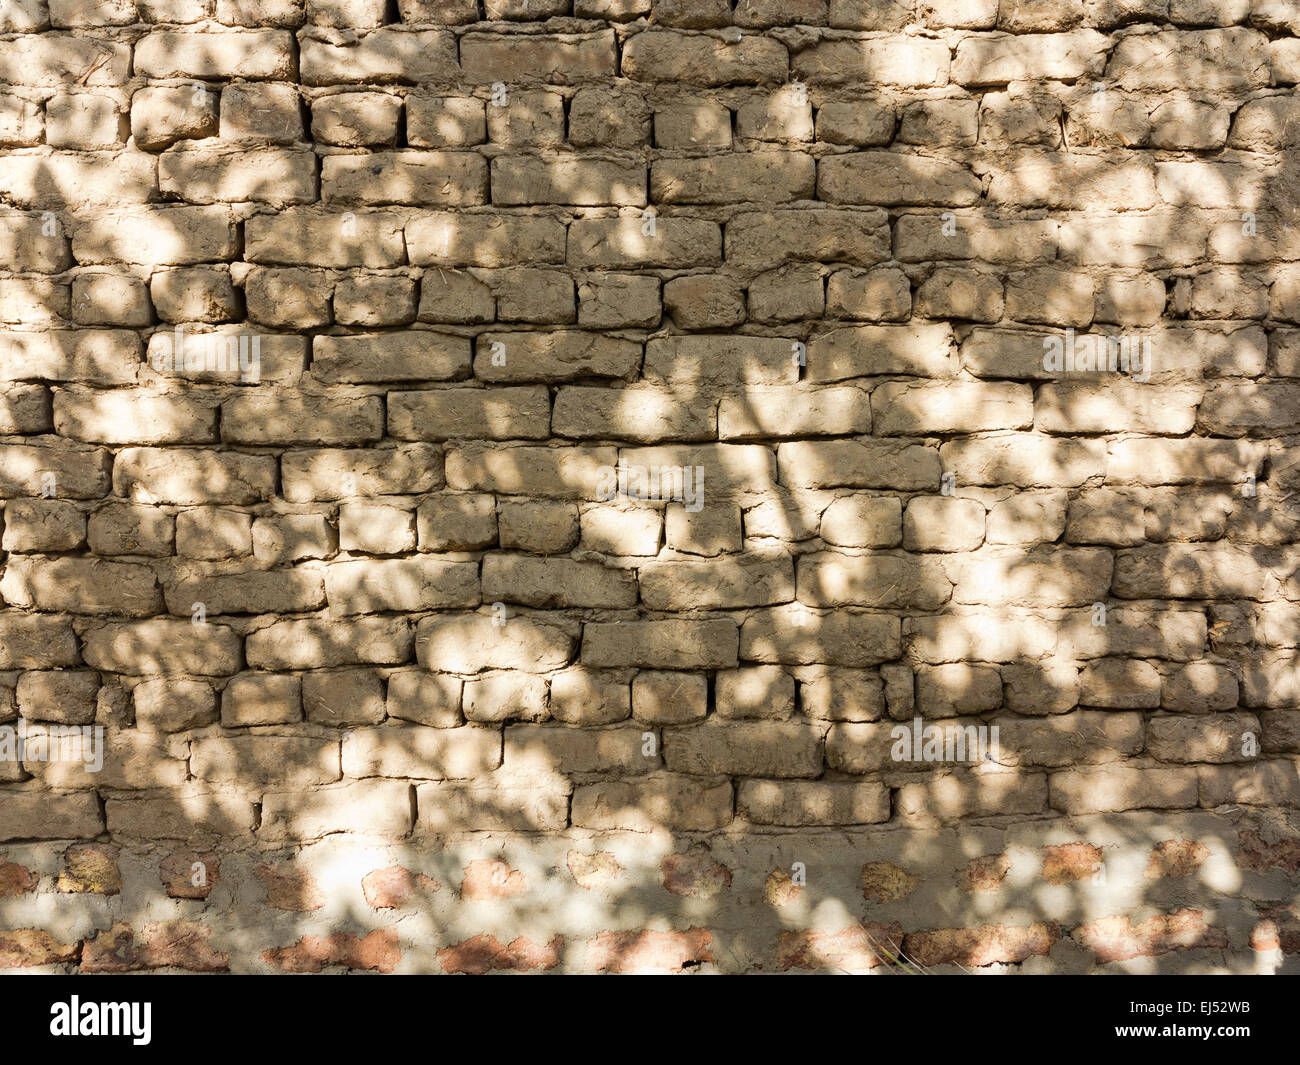 Detail close up of an area of mud brick wall in dappled light, Egypt Africa - Stock Image